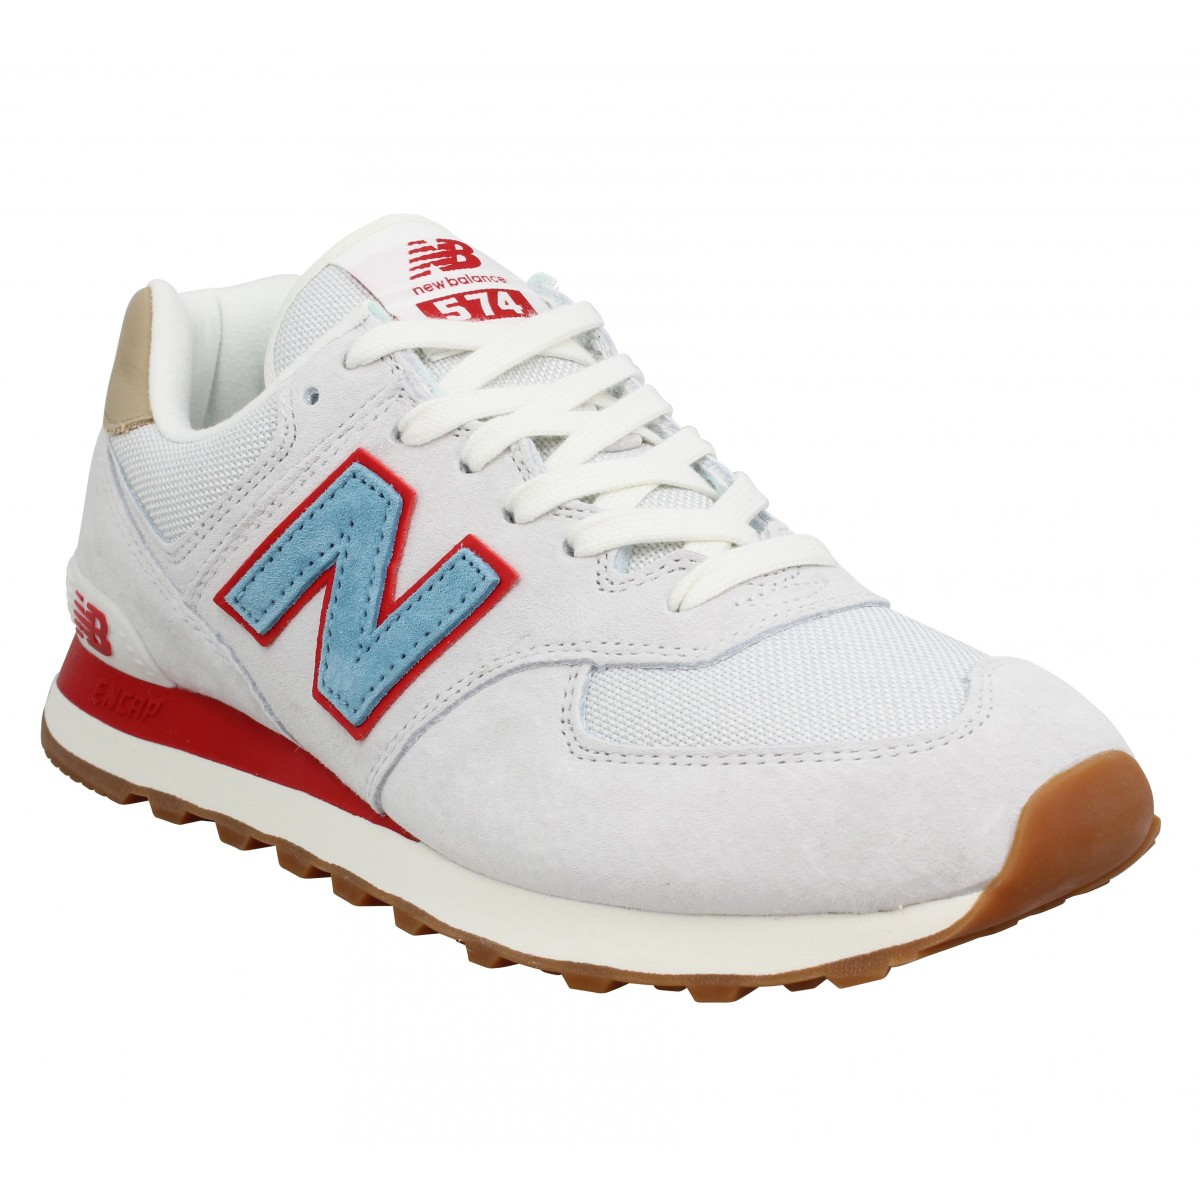 énorme réduction 33312 83f42 NEW BALANCE 574 velours Homme Blanc